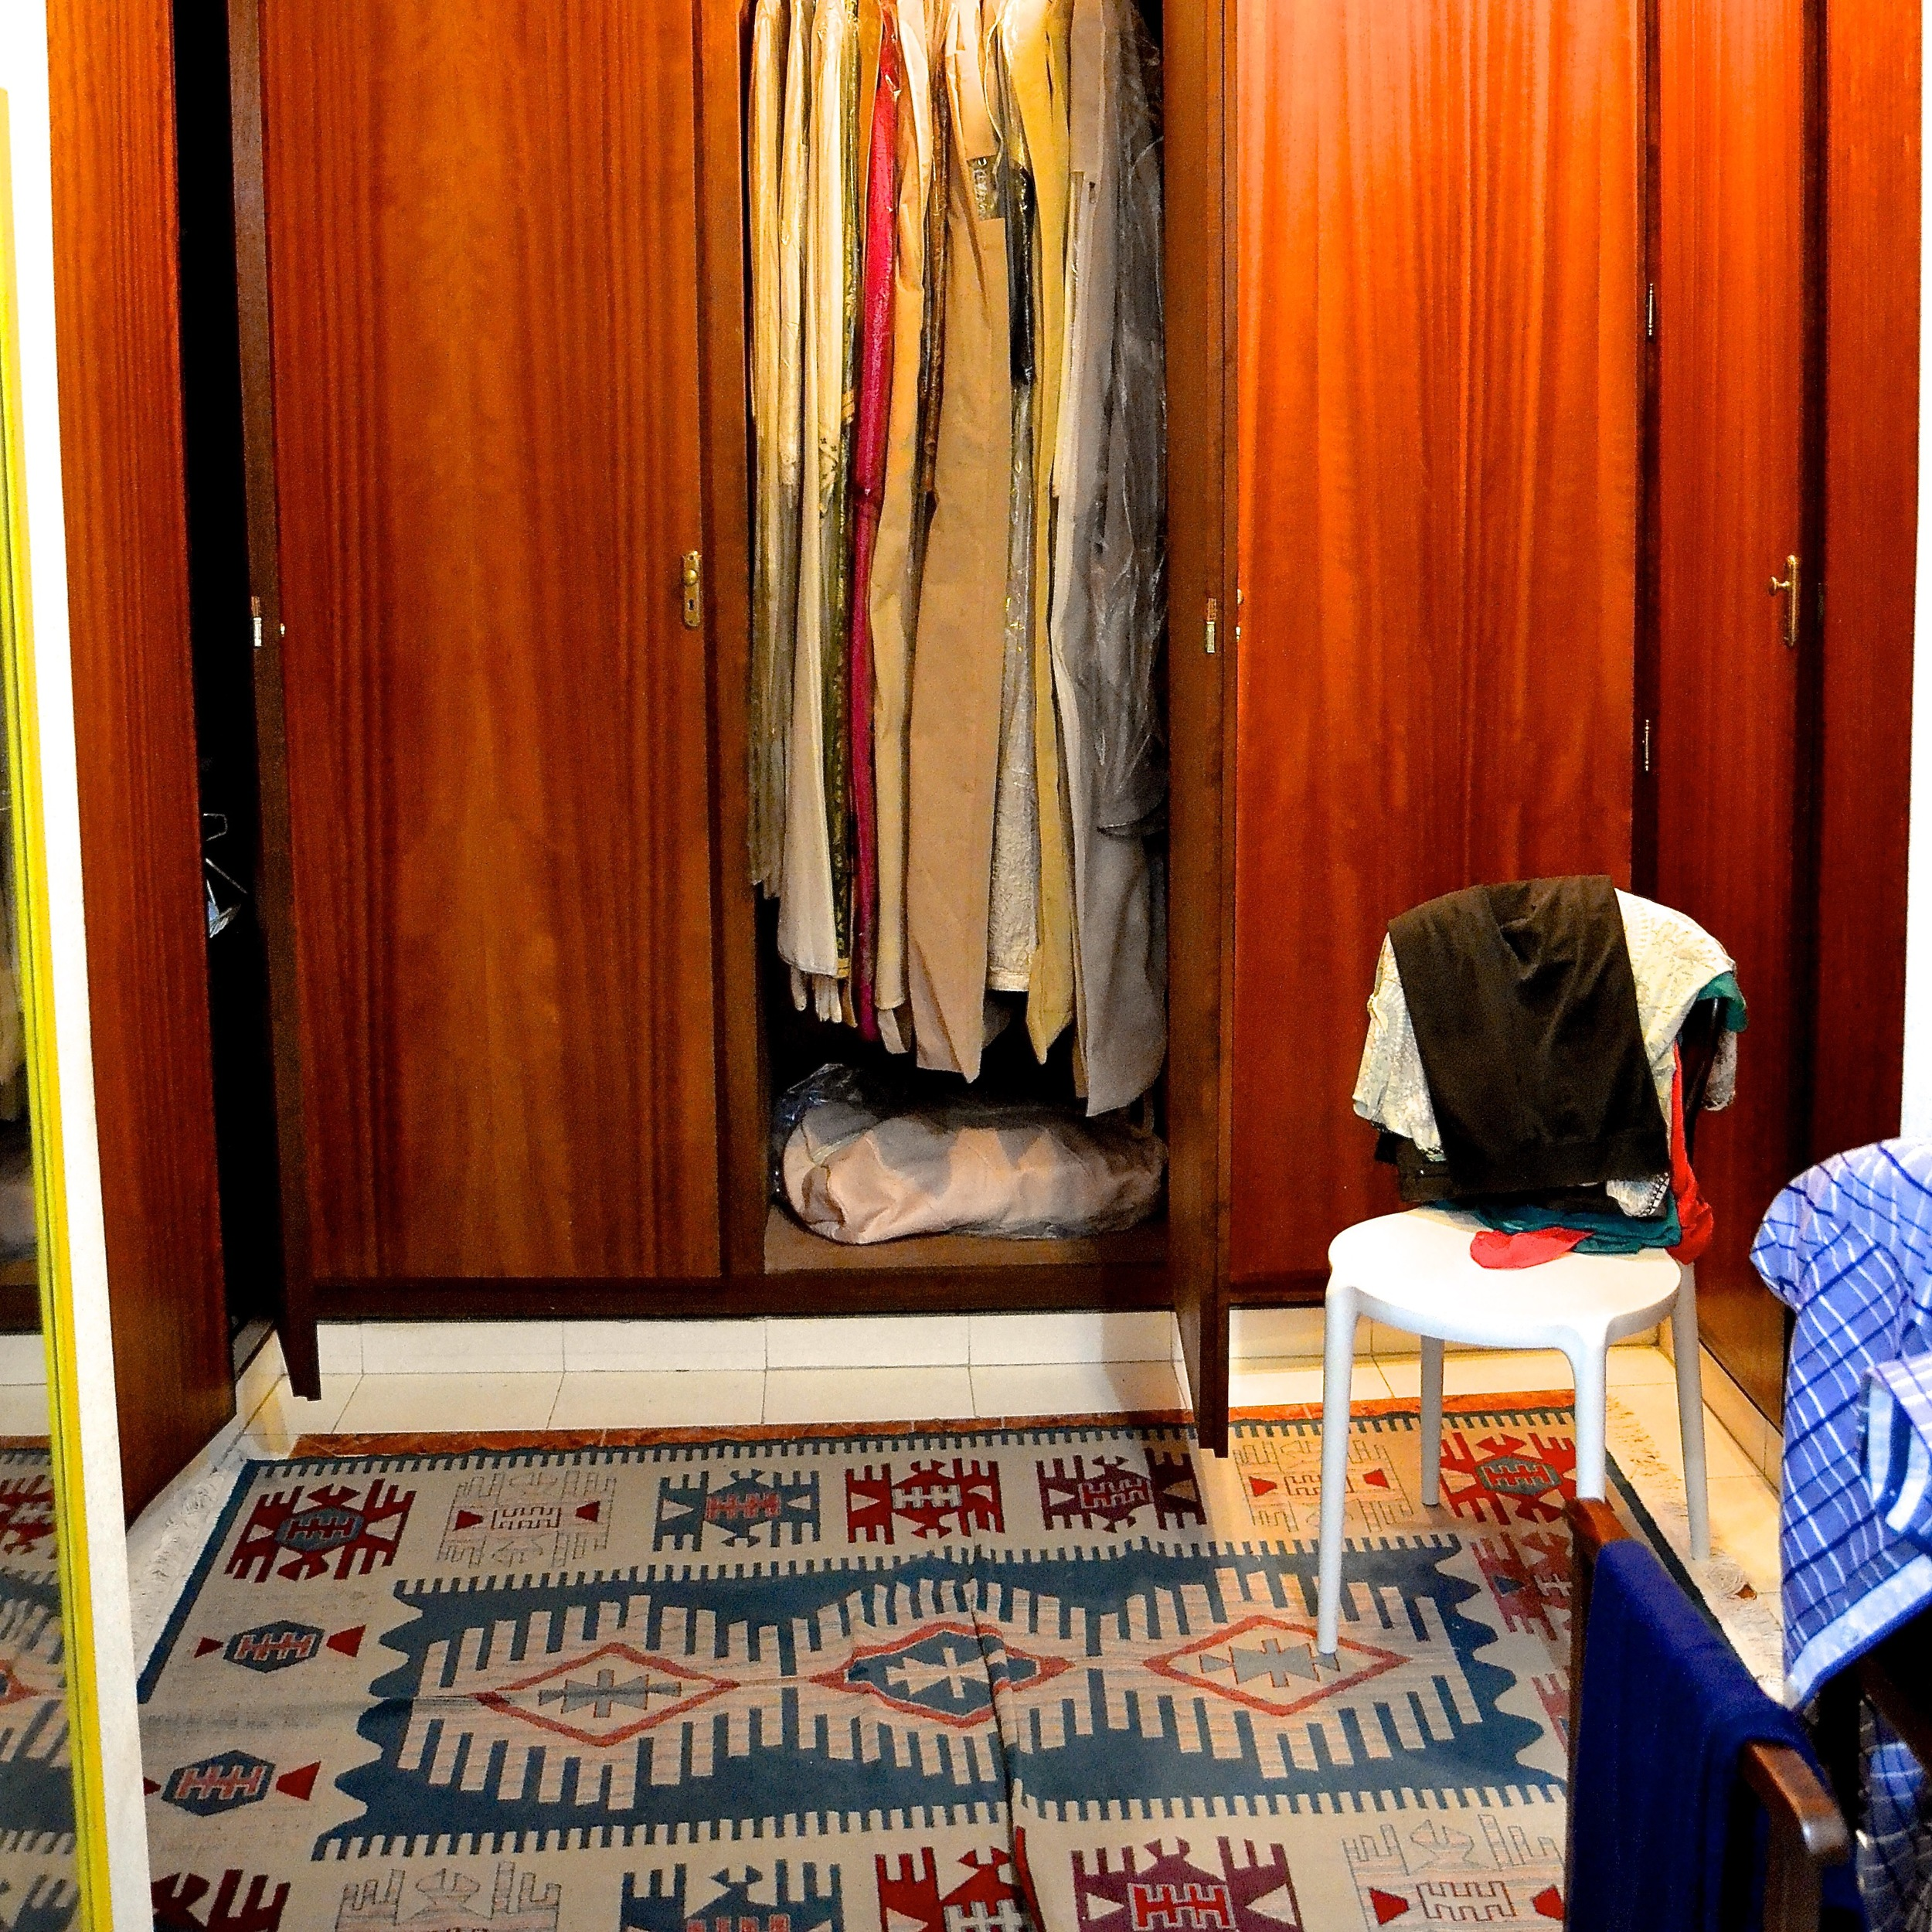 Thouria's dressing room is anchored bya traditional woven rug.